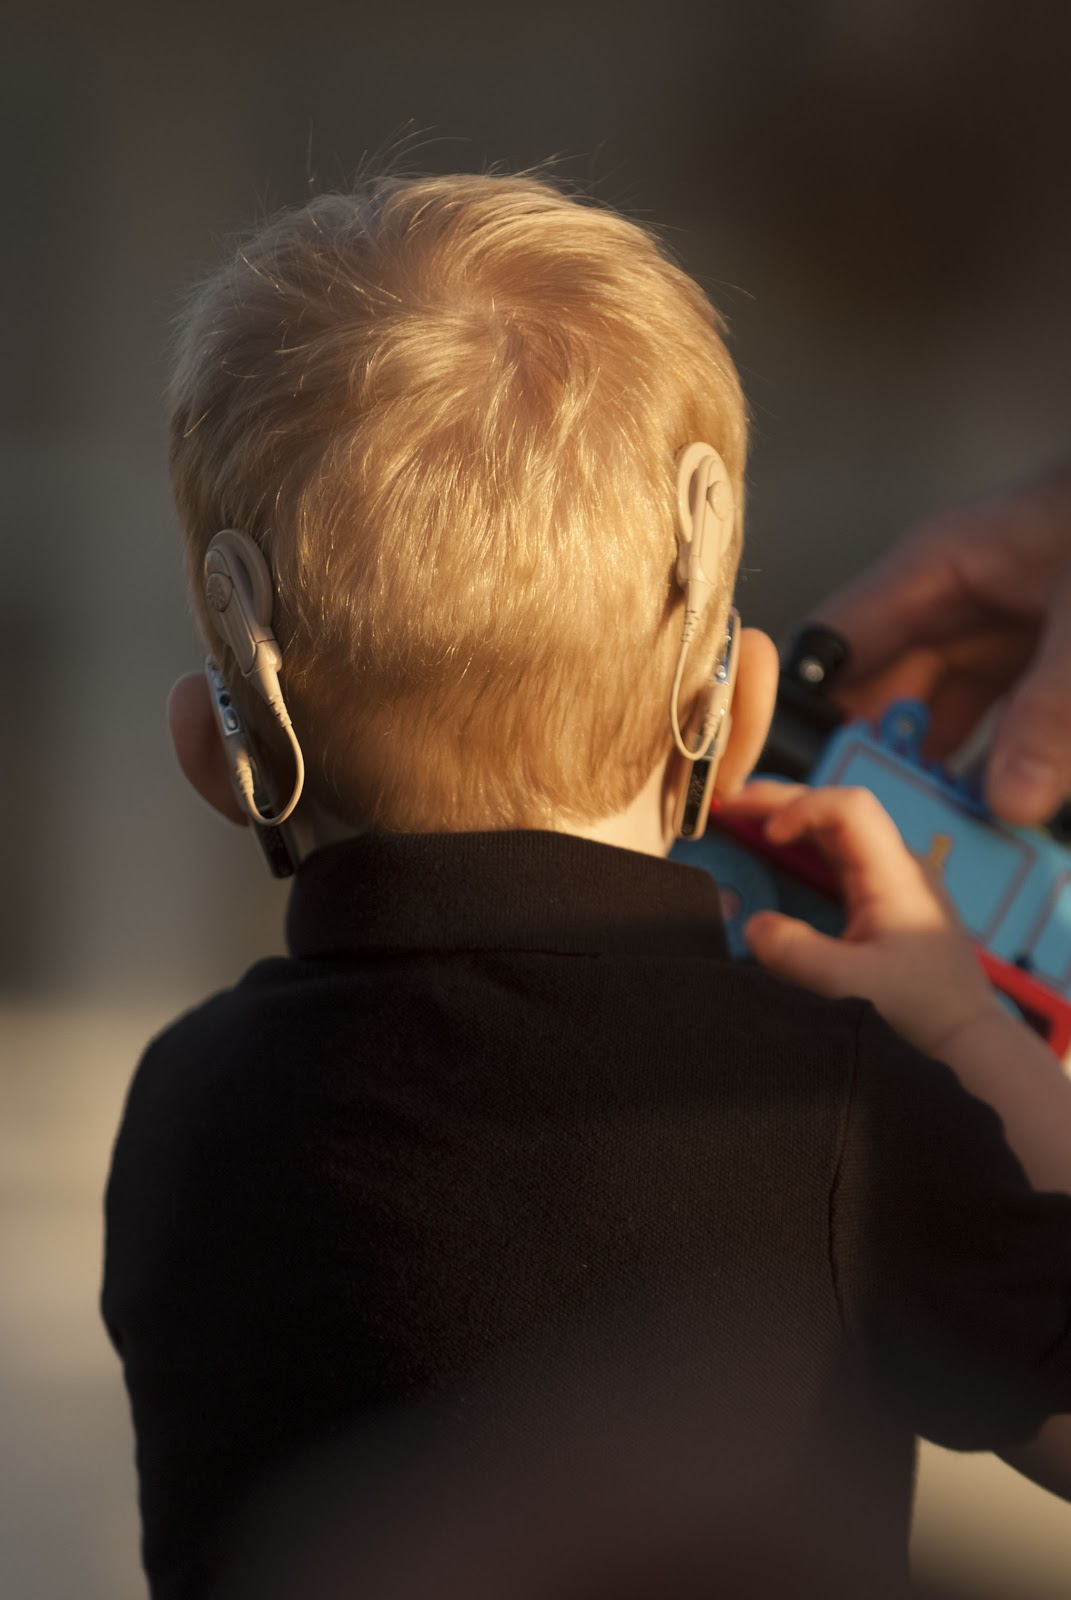 Hearing Aid Cochlear Impants Are Two Better Than One